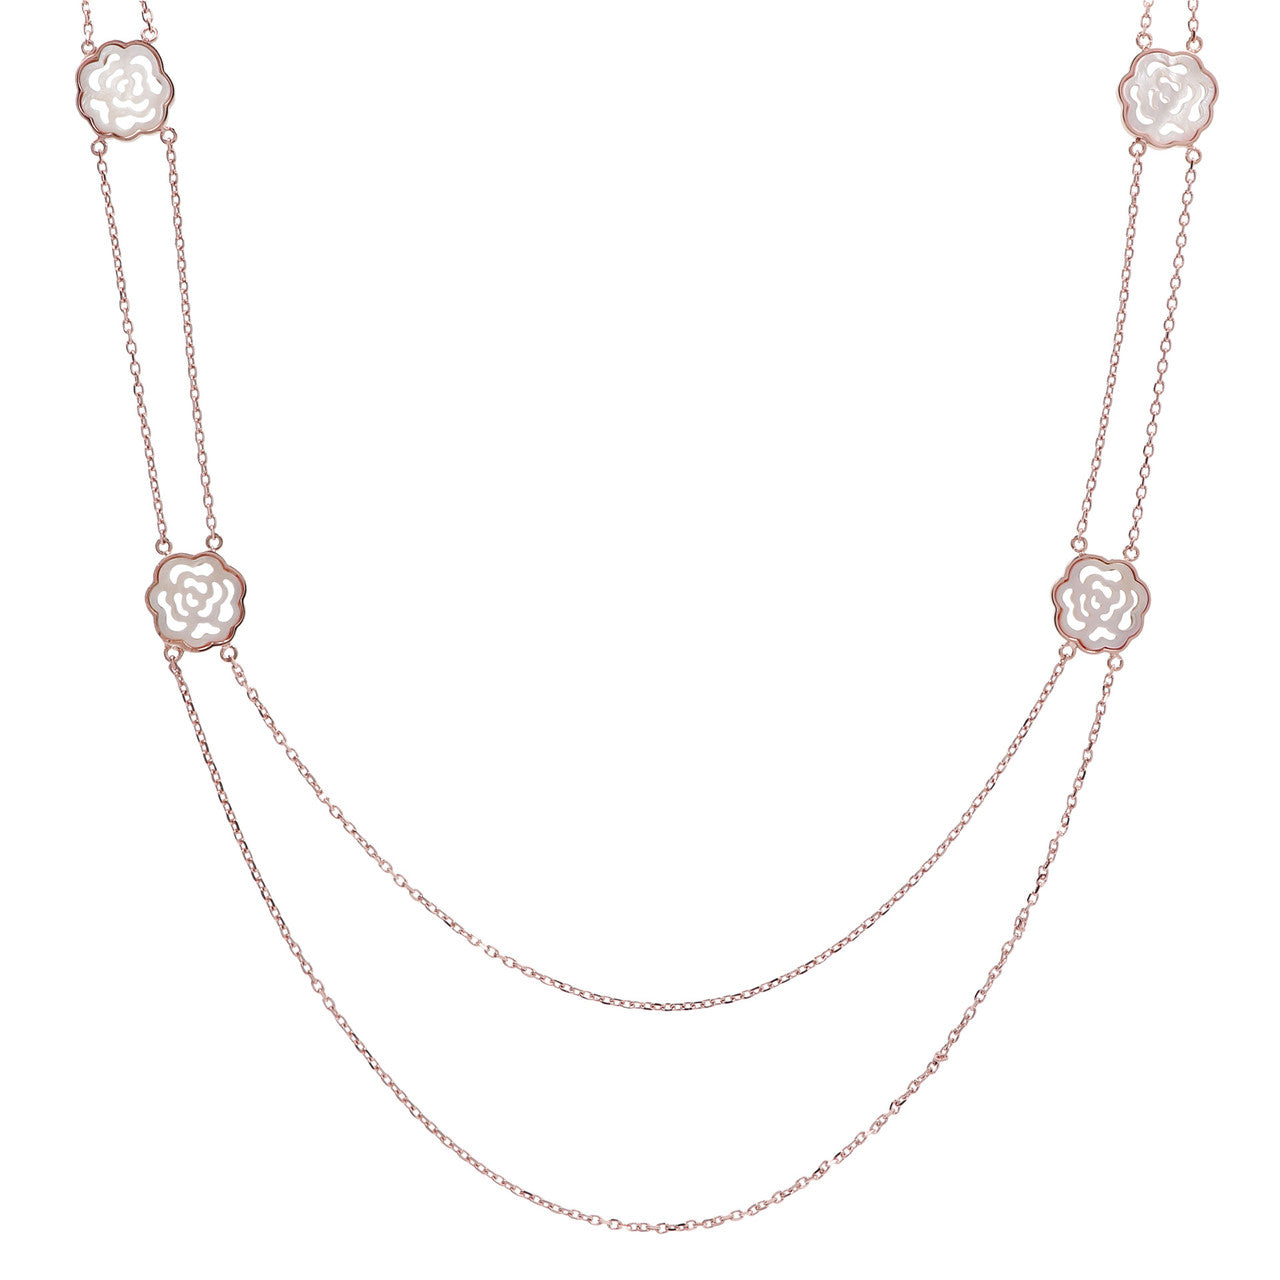 Camelllia Two Strand Necklace